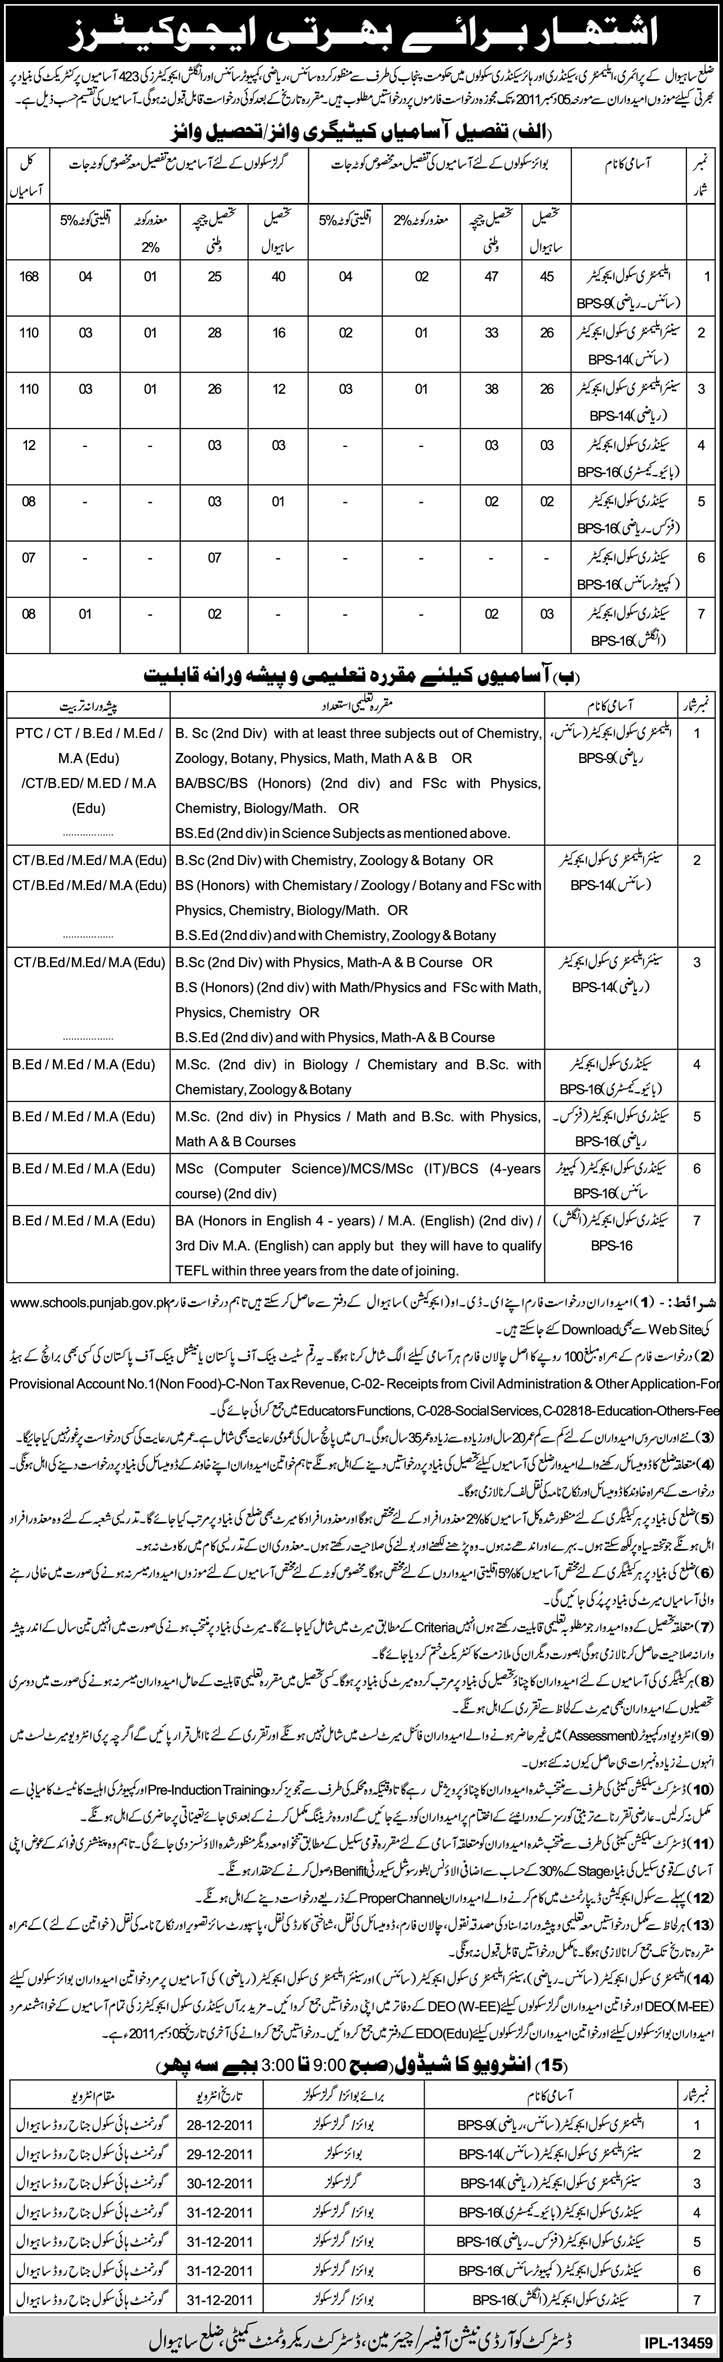 1101380351 1 Educator Jobs Opportunities in Sahiwal